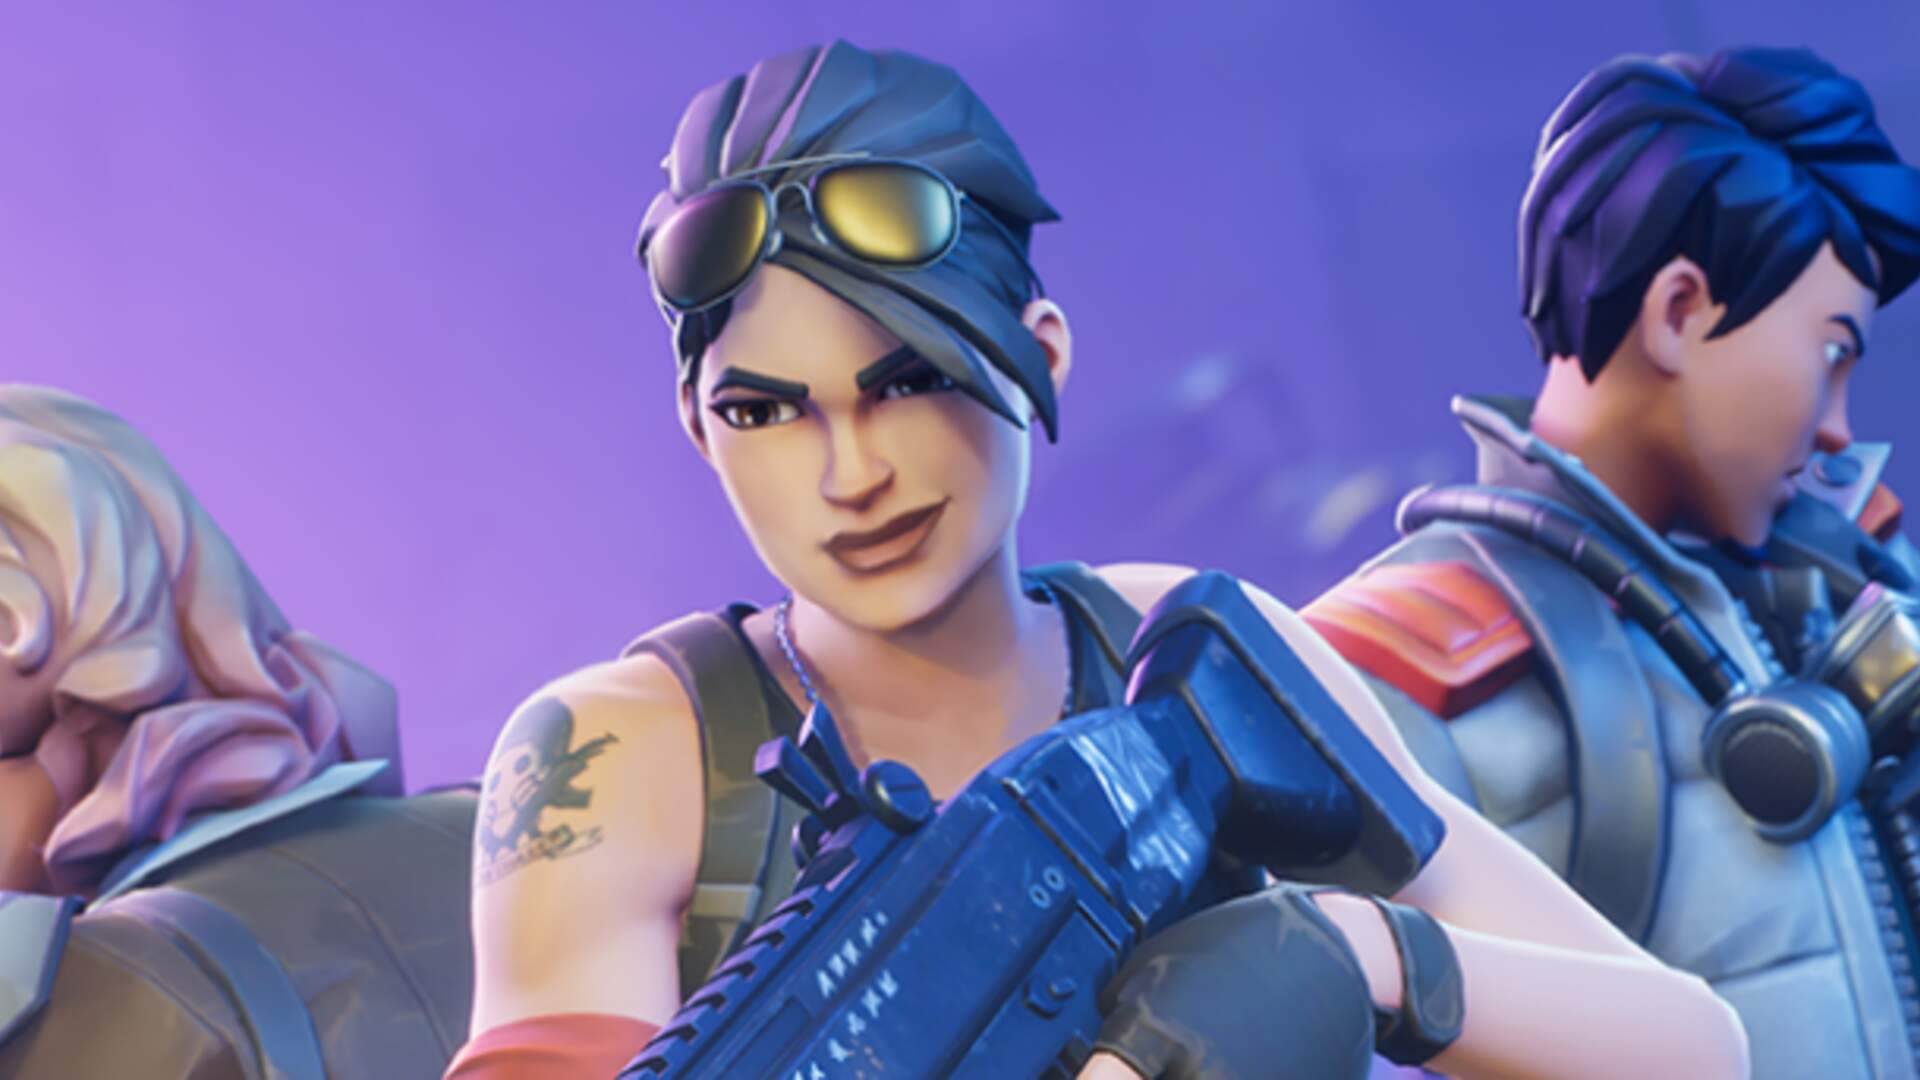 Fortnite Save The World Players Say They're Second-Class After Valentine's Content Delay